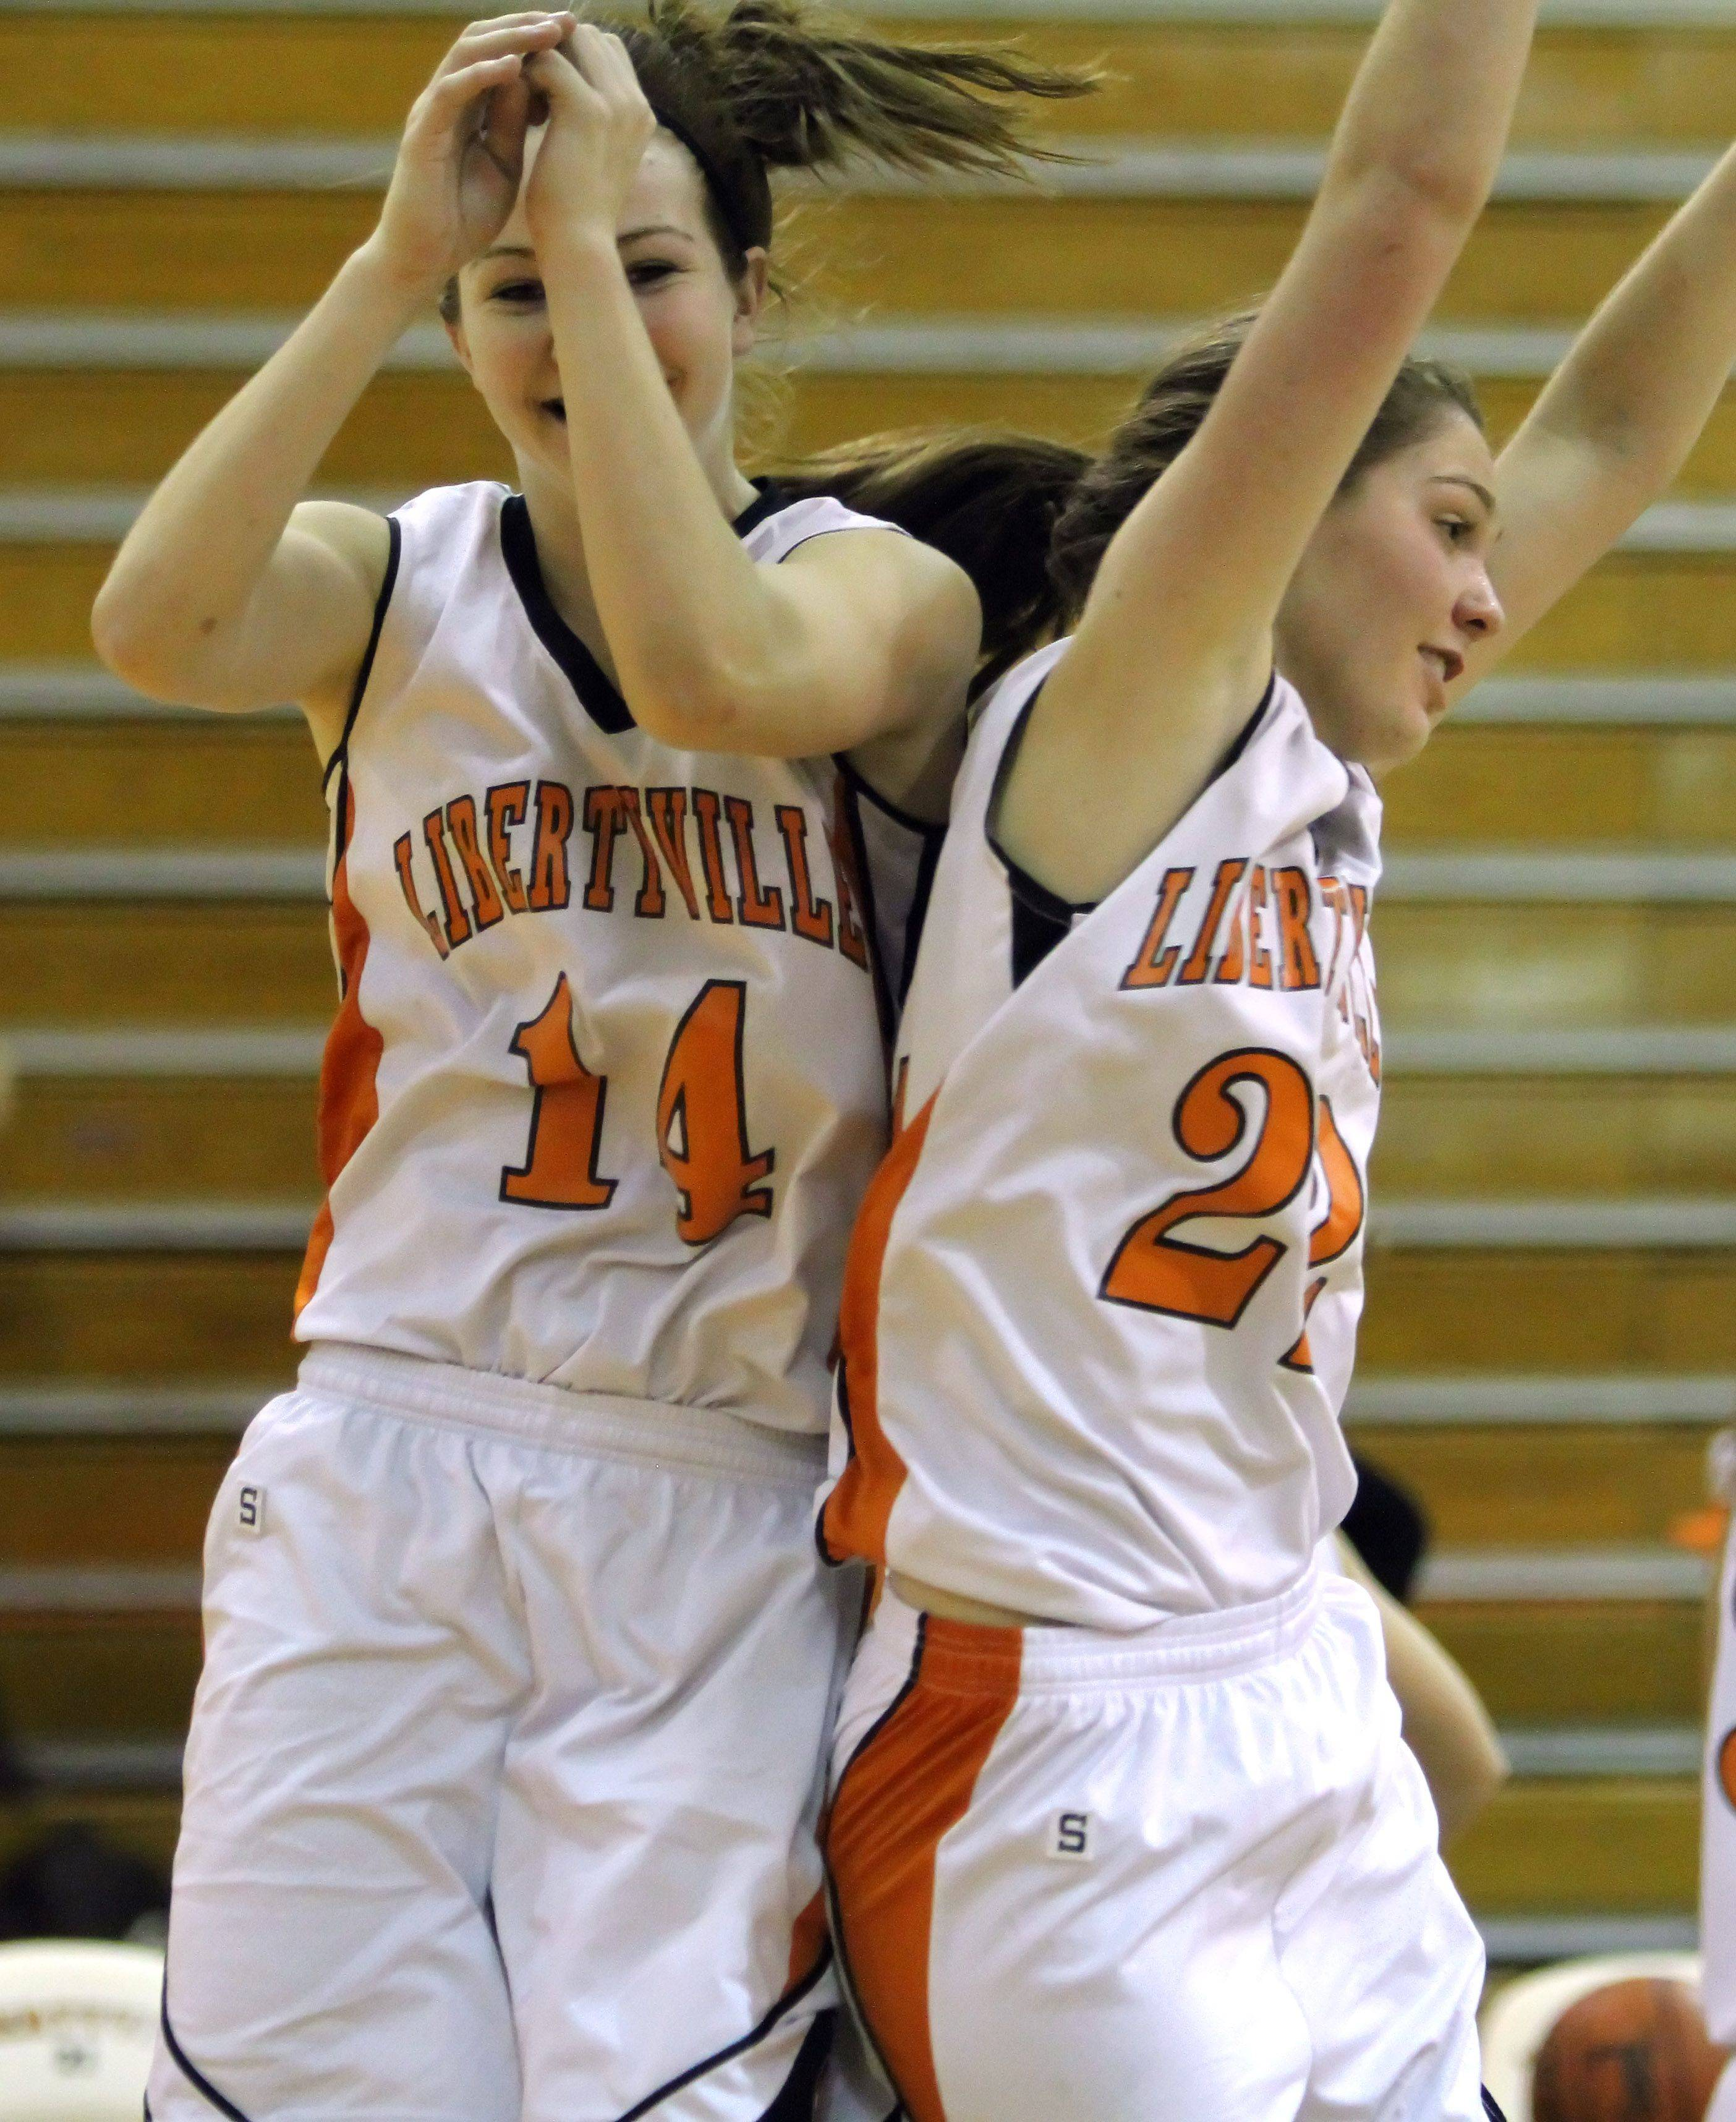 Libertyville's Savanna Trees, left, and Olivia Wilcox celebrate after beating Zion-Benton Wednesday at Libertyville High School.